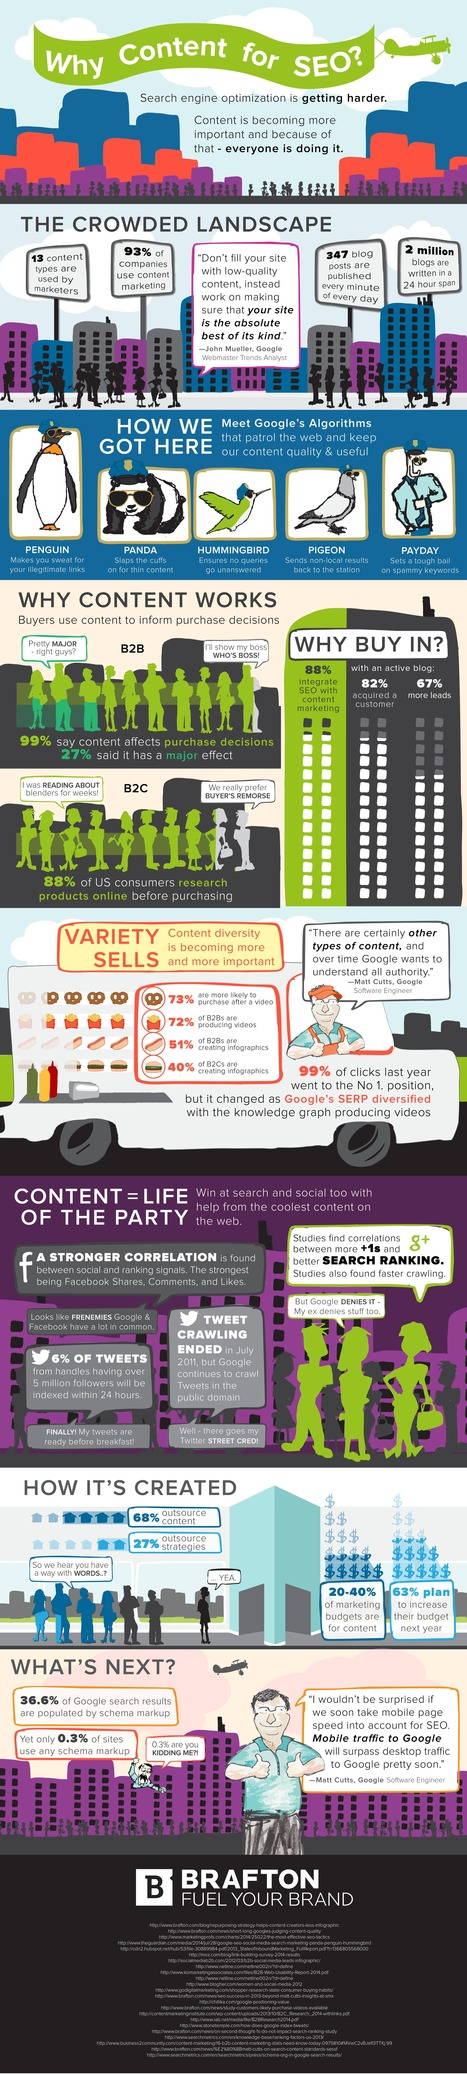 Why content for SEO (2015) | Content Creation, Curation, Management | Scoop.it